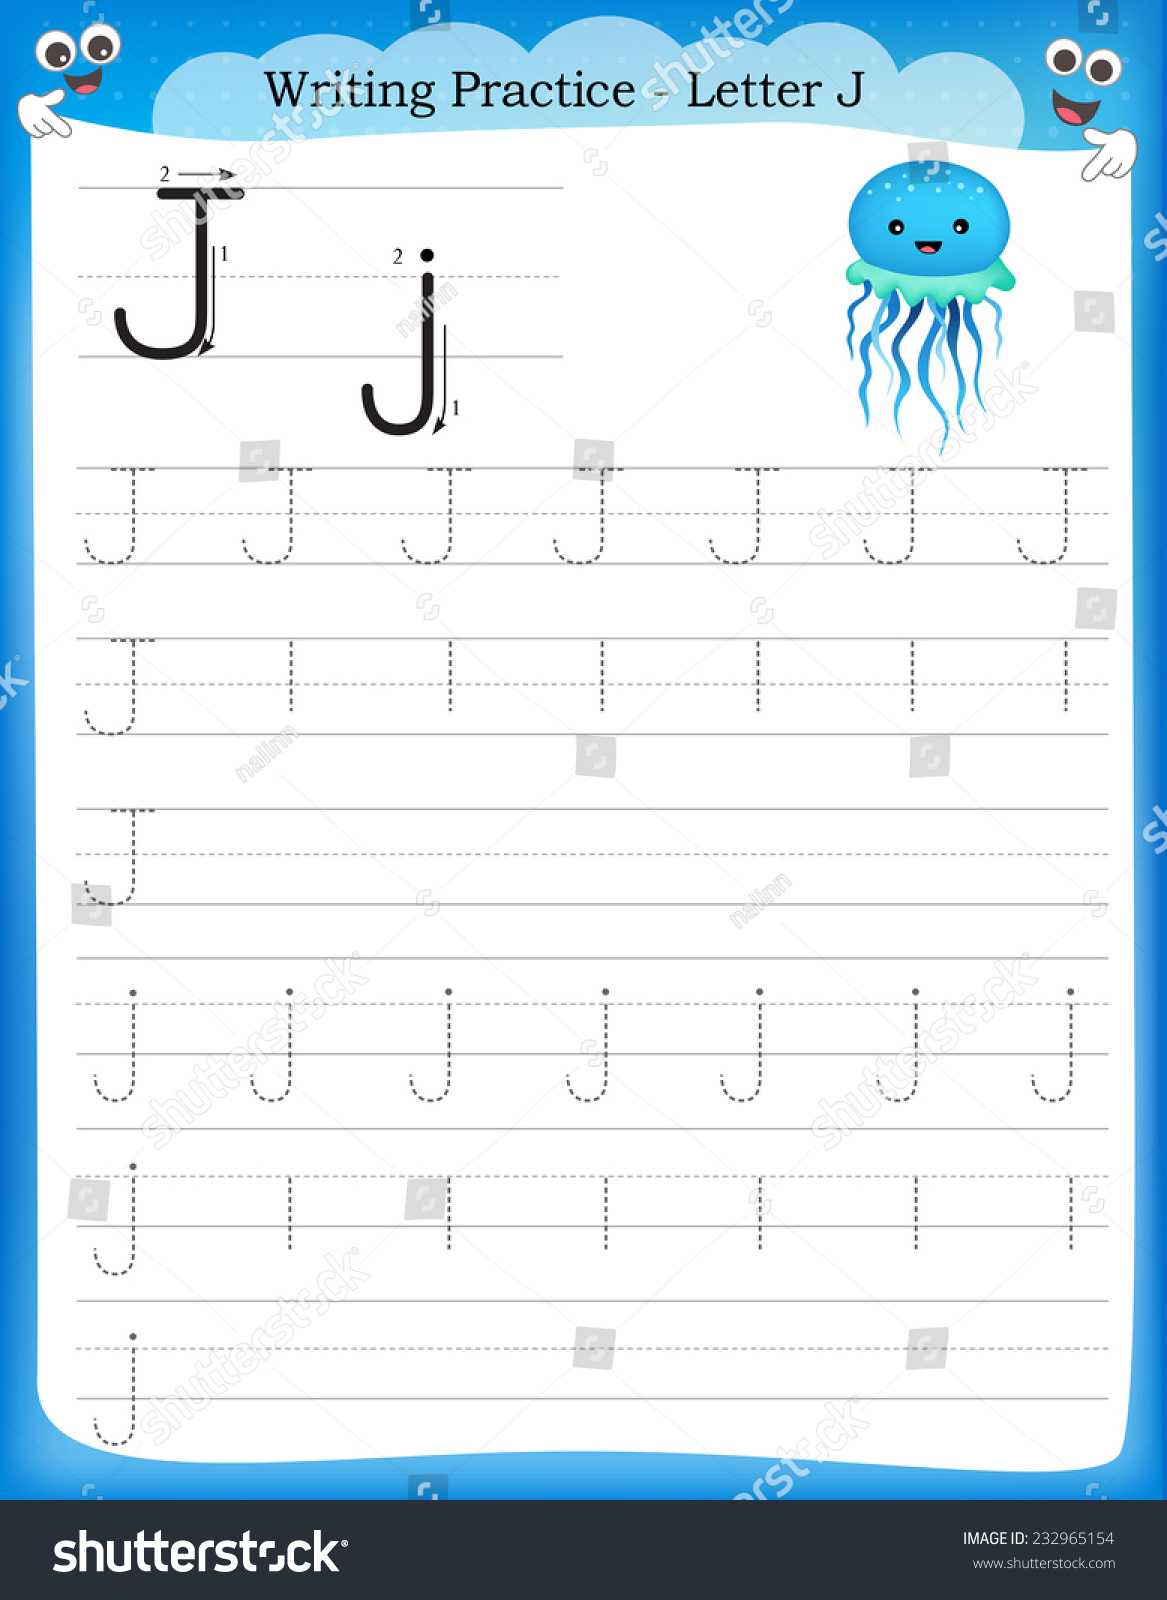 Handwriting Worksheets Letter J